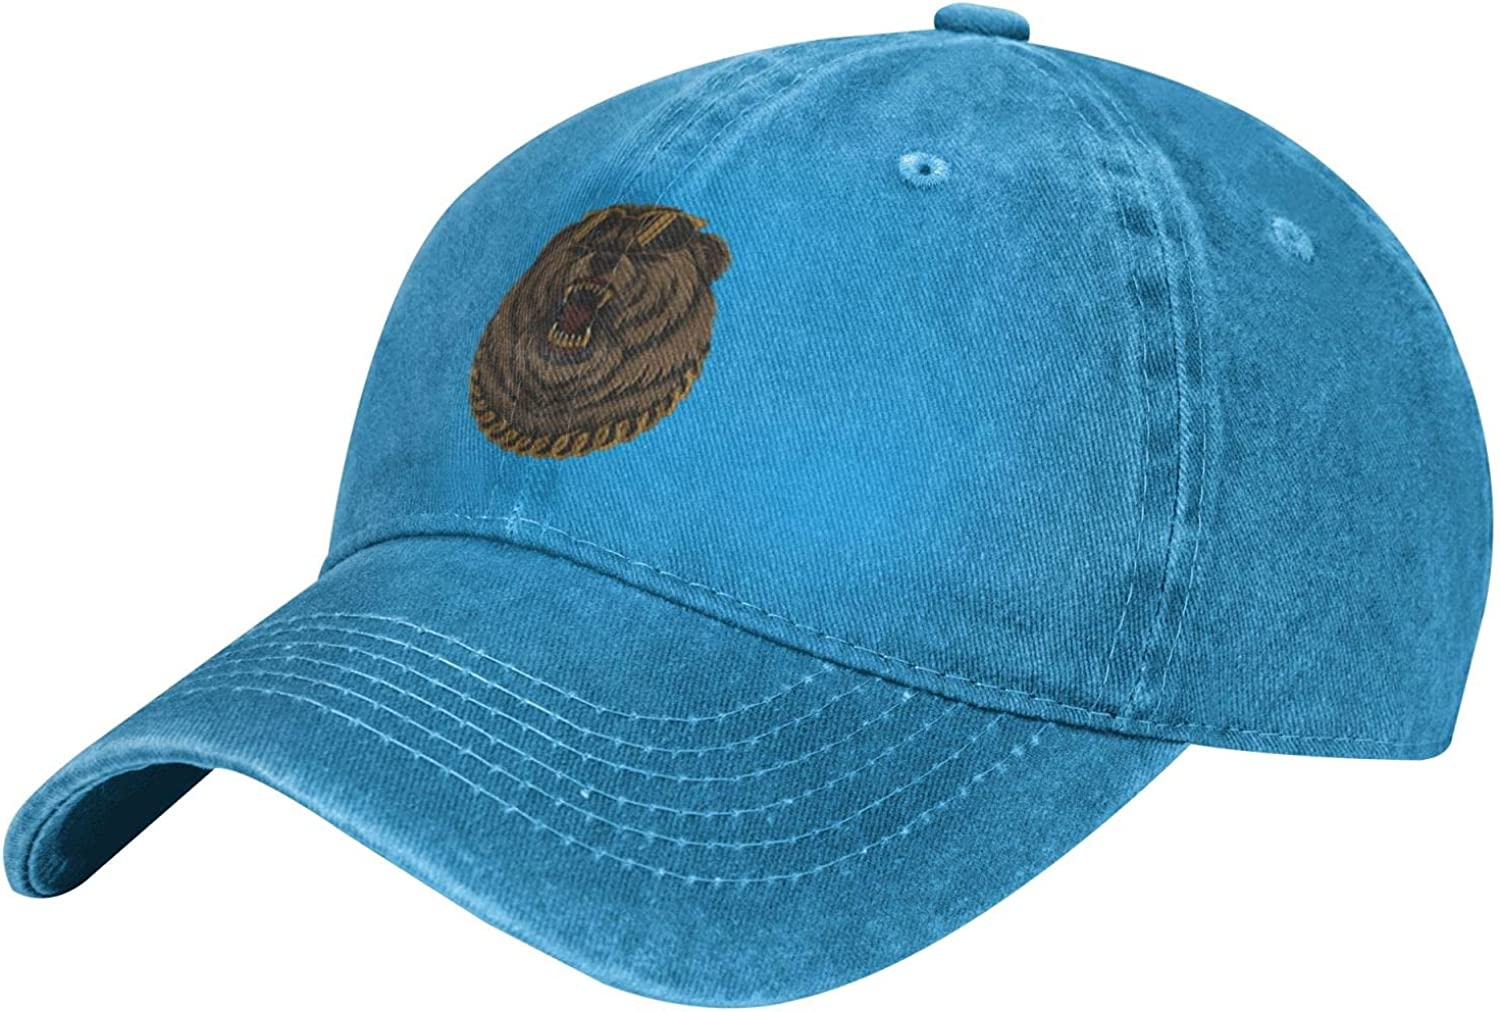 Jianglihxp Angry Cool Bear Gold Chain Unisex Adult Fashion Outdoor Cowboy Hat Adjustable Baseball Cap